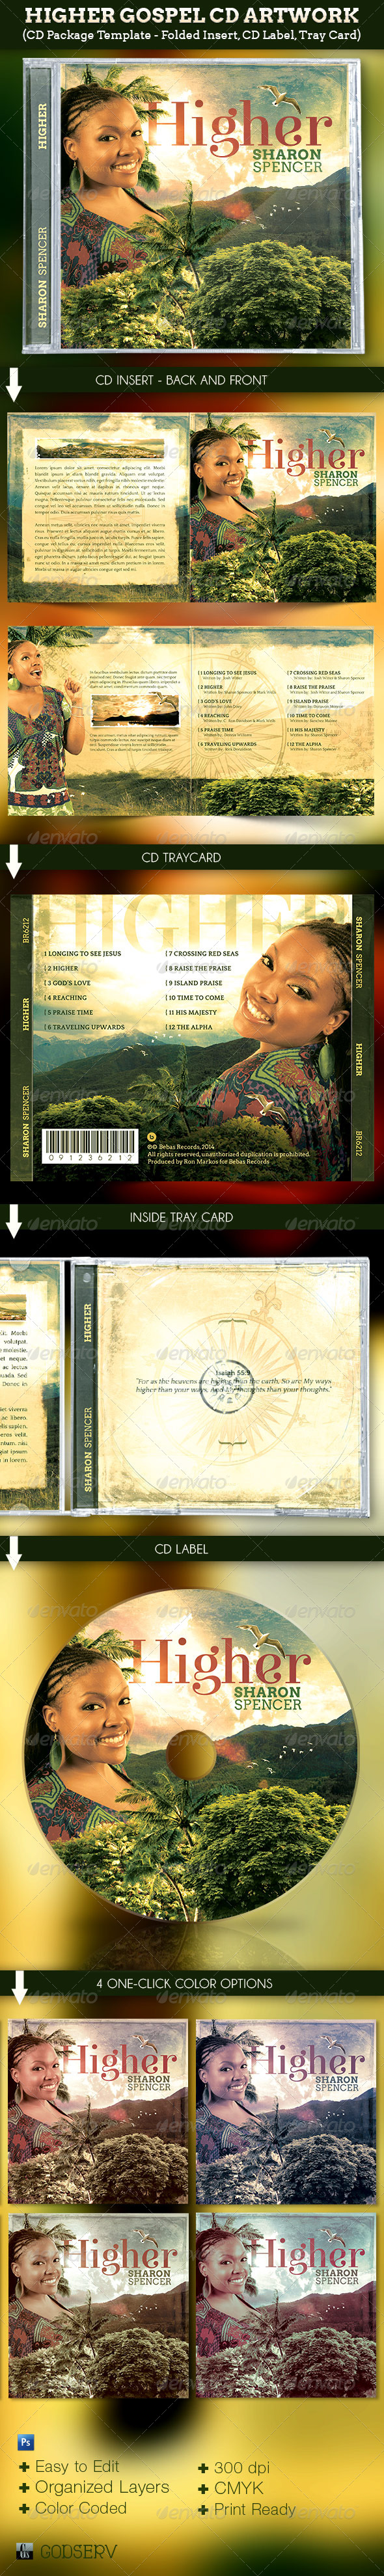 Higher Gospel CD Artwork Template - CD & DVD artwork Print Templates